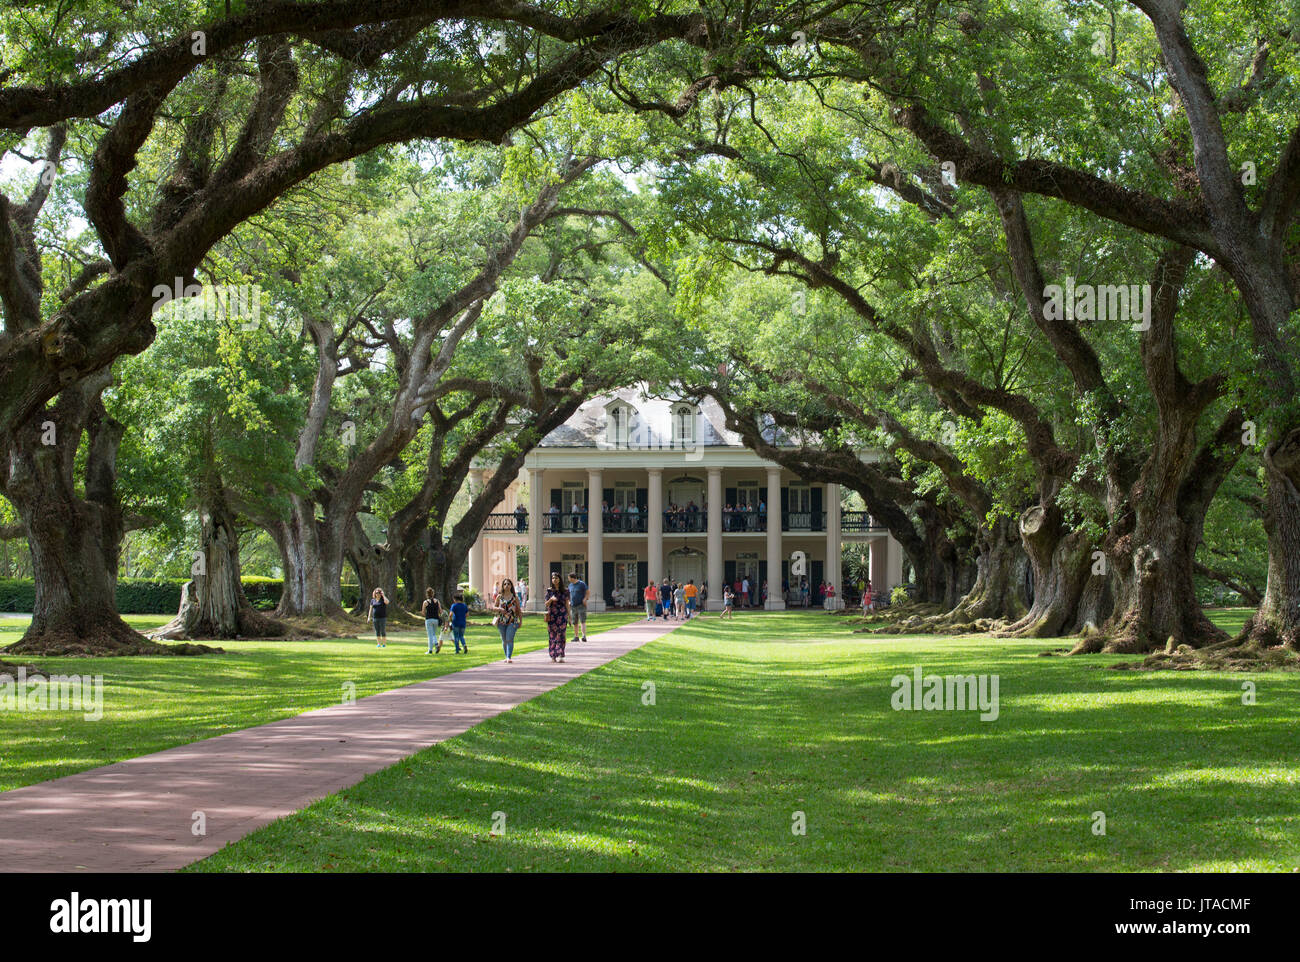 The 300 Year Old Oak Trees, Oak Alley Plantation, built 1830s, near St. James, Louisiana, USA, North America - Stock Image